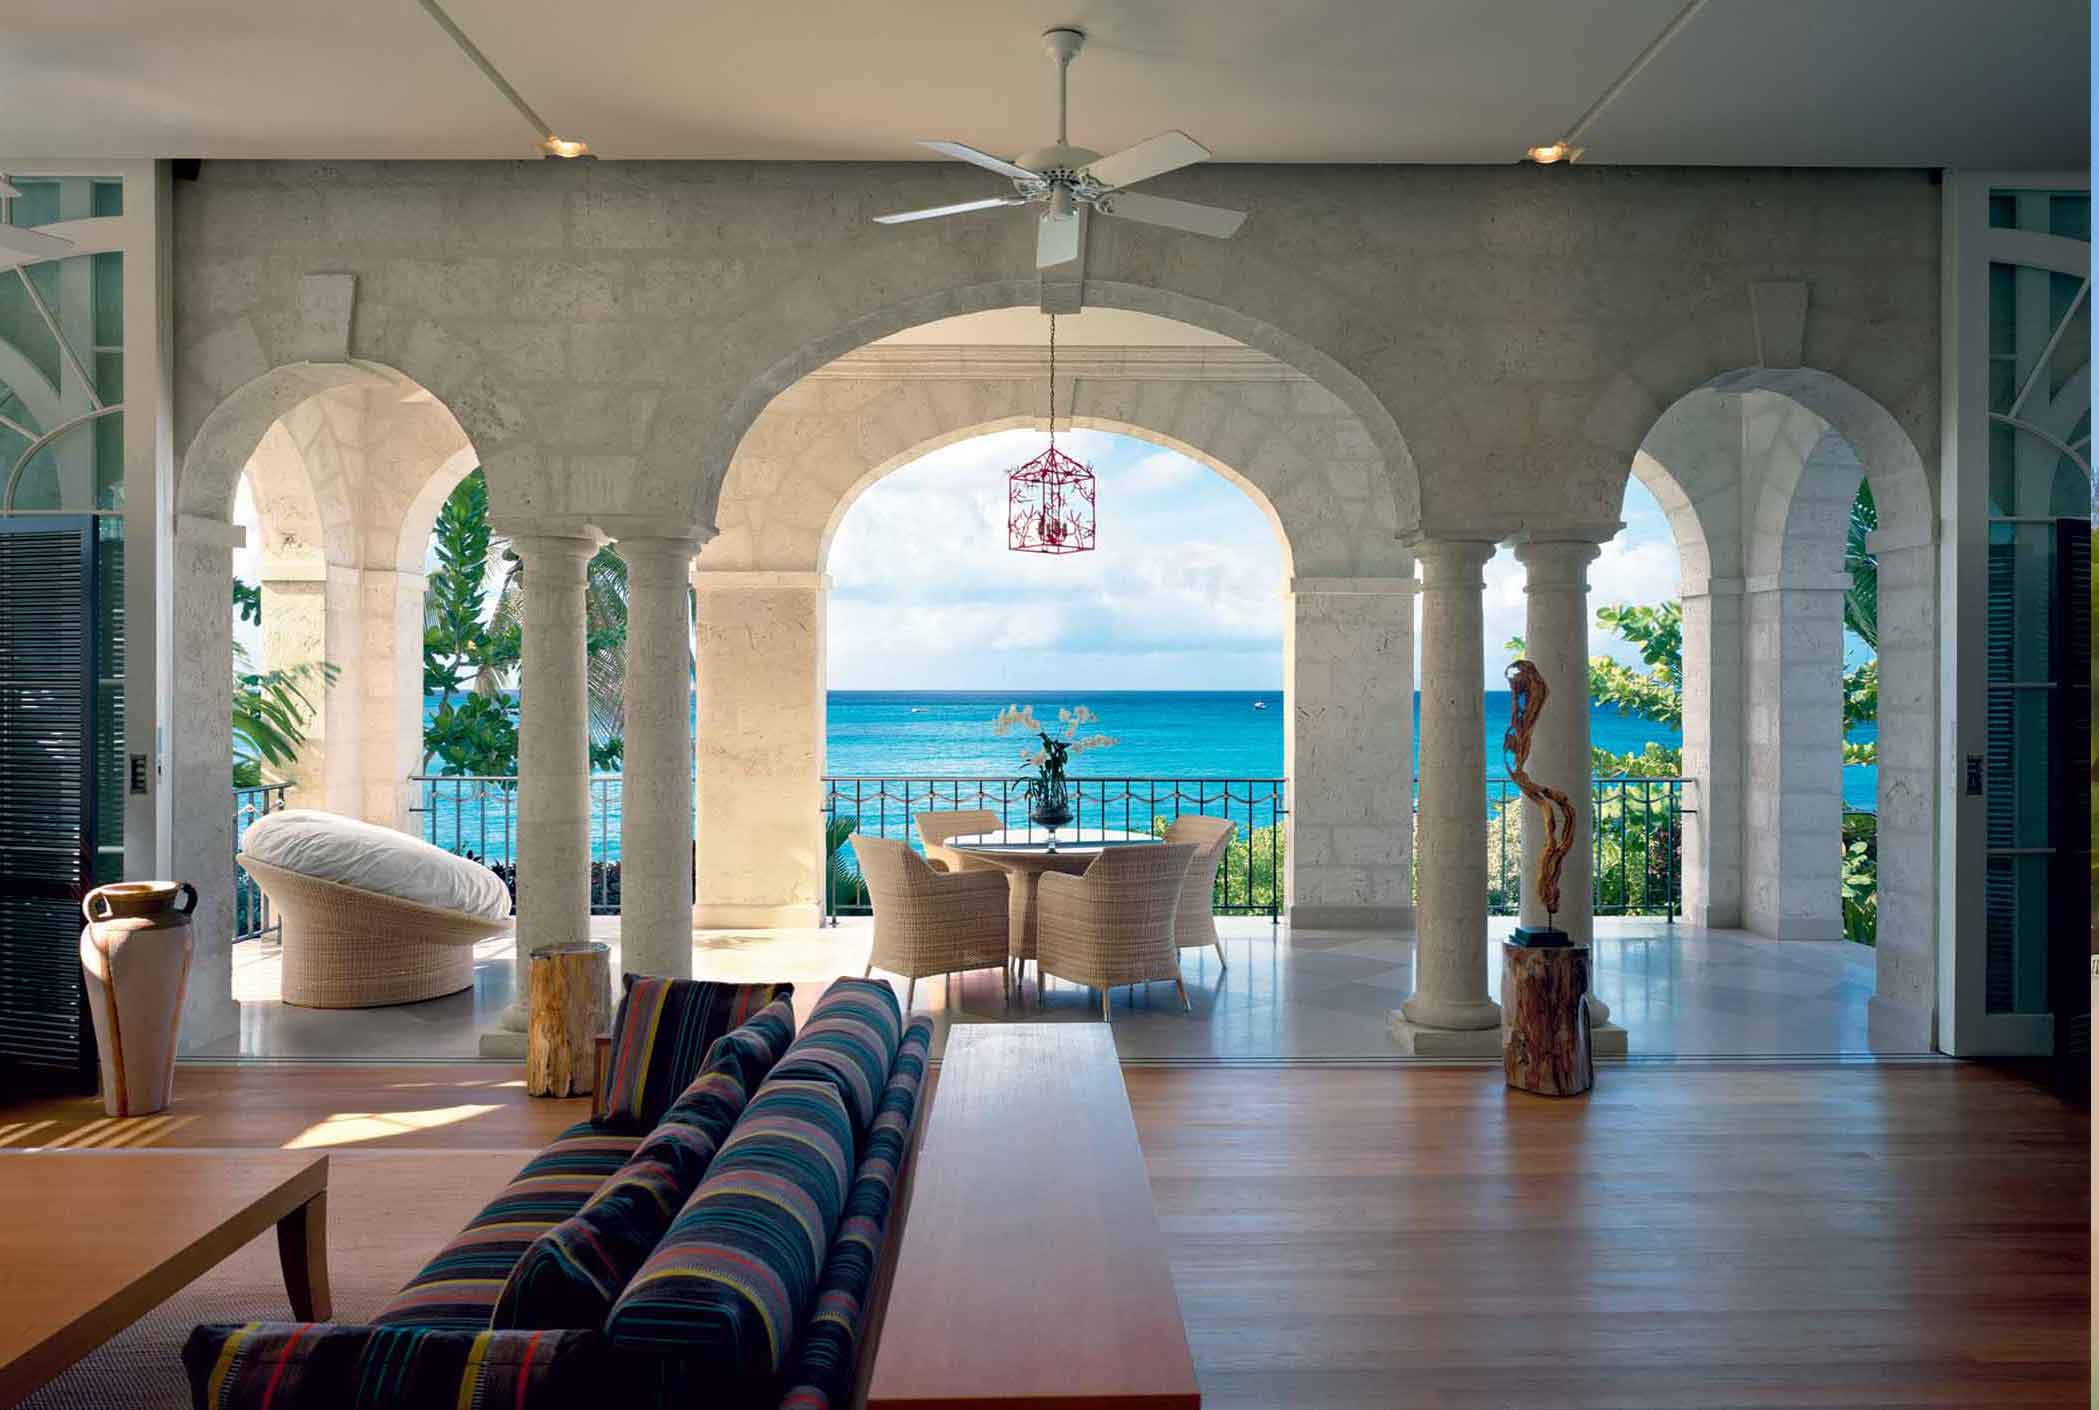 Overlooking the Caribbean Sea and Barbados' Platinum Coast, One Sandy Lane is an enclave of ultimately private, refined, and secure residences exuding an ambiance of an unsurpassed opulence.